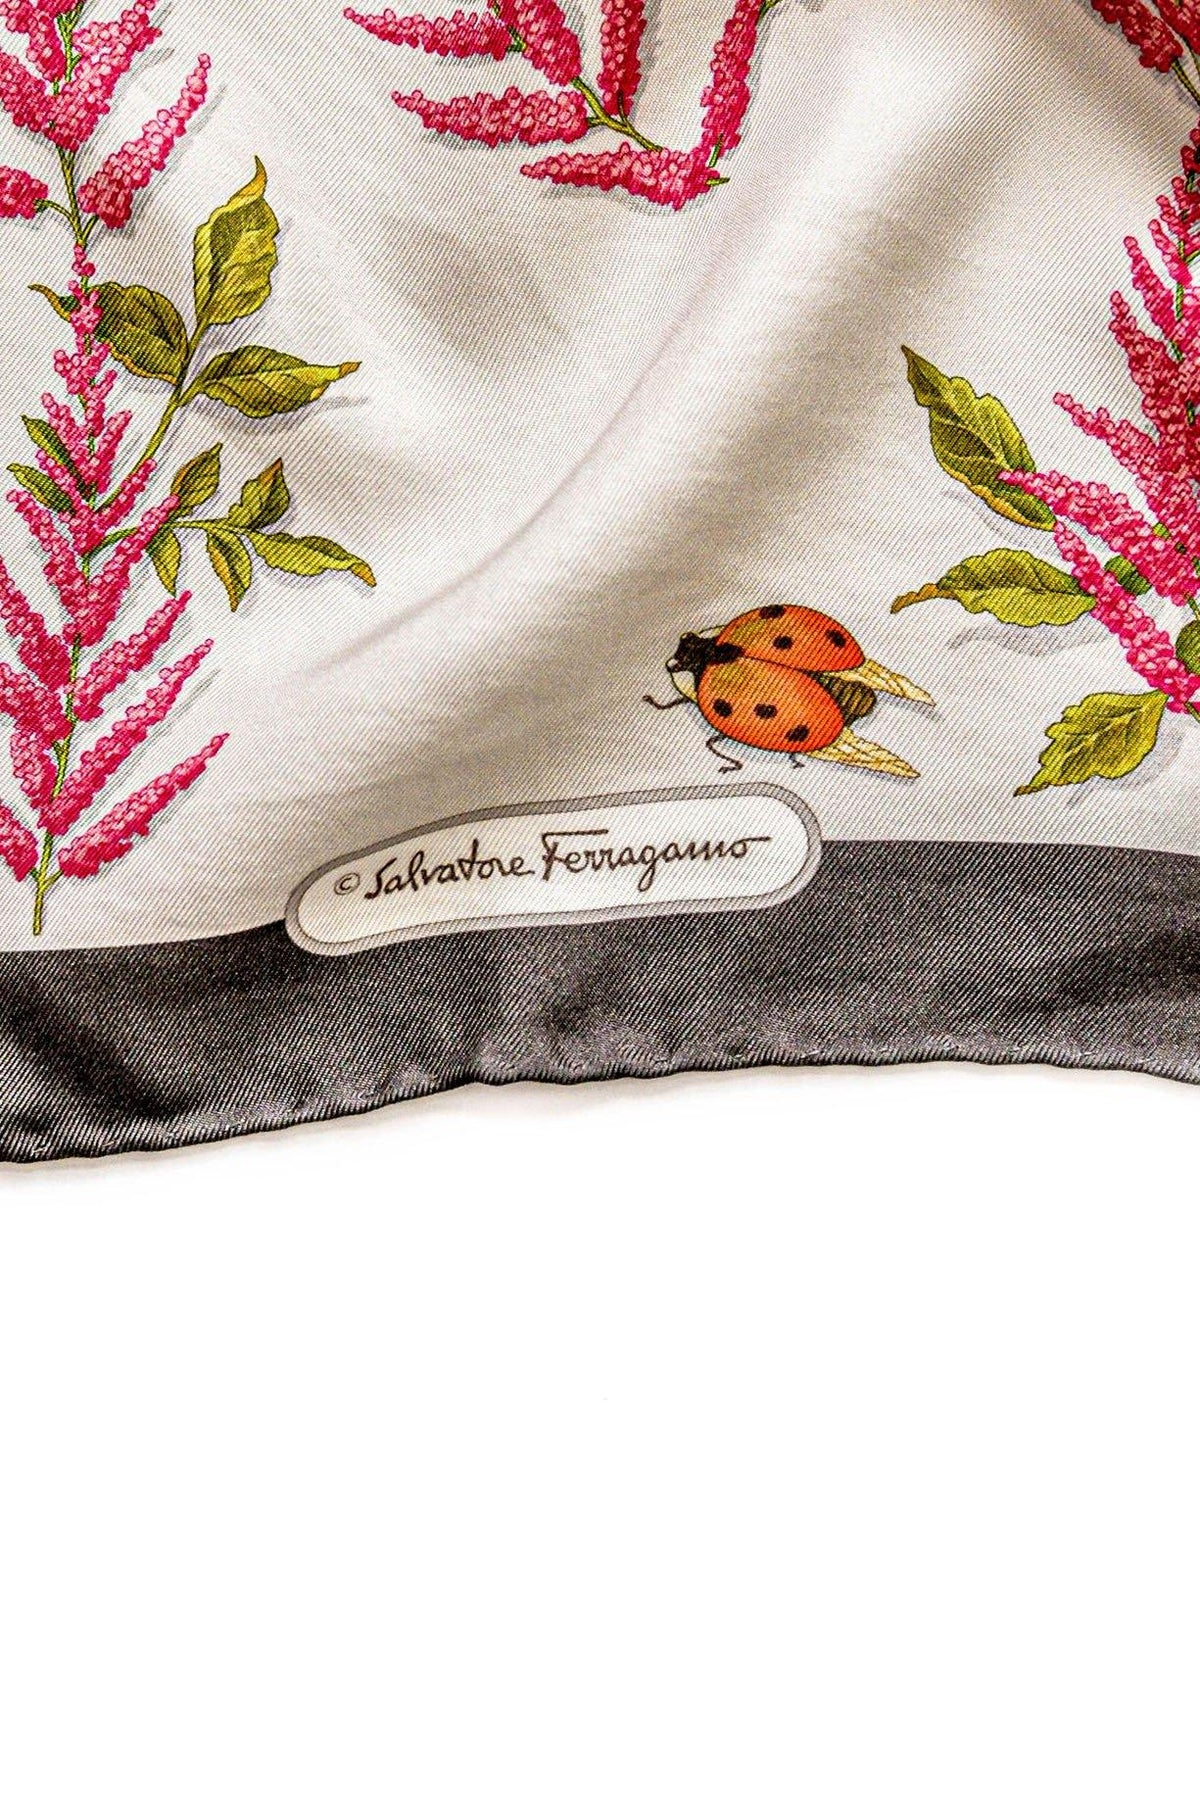 Salvatore Ferragamo Ladybug Scarf From Sweet & Spark.